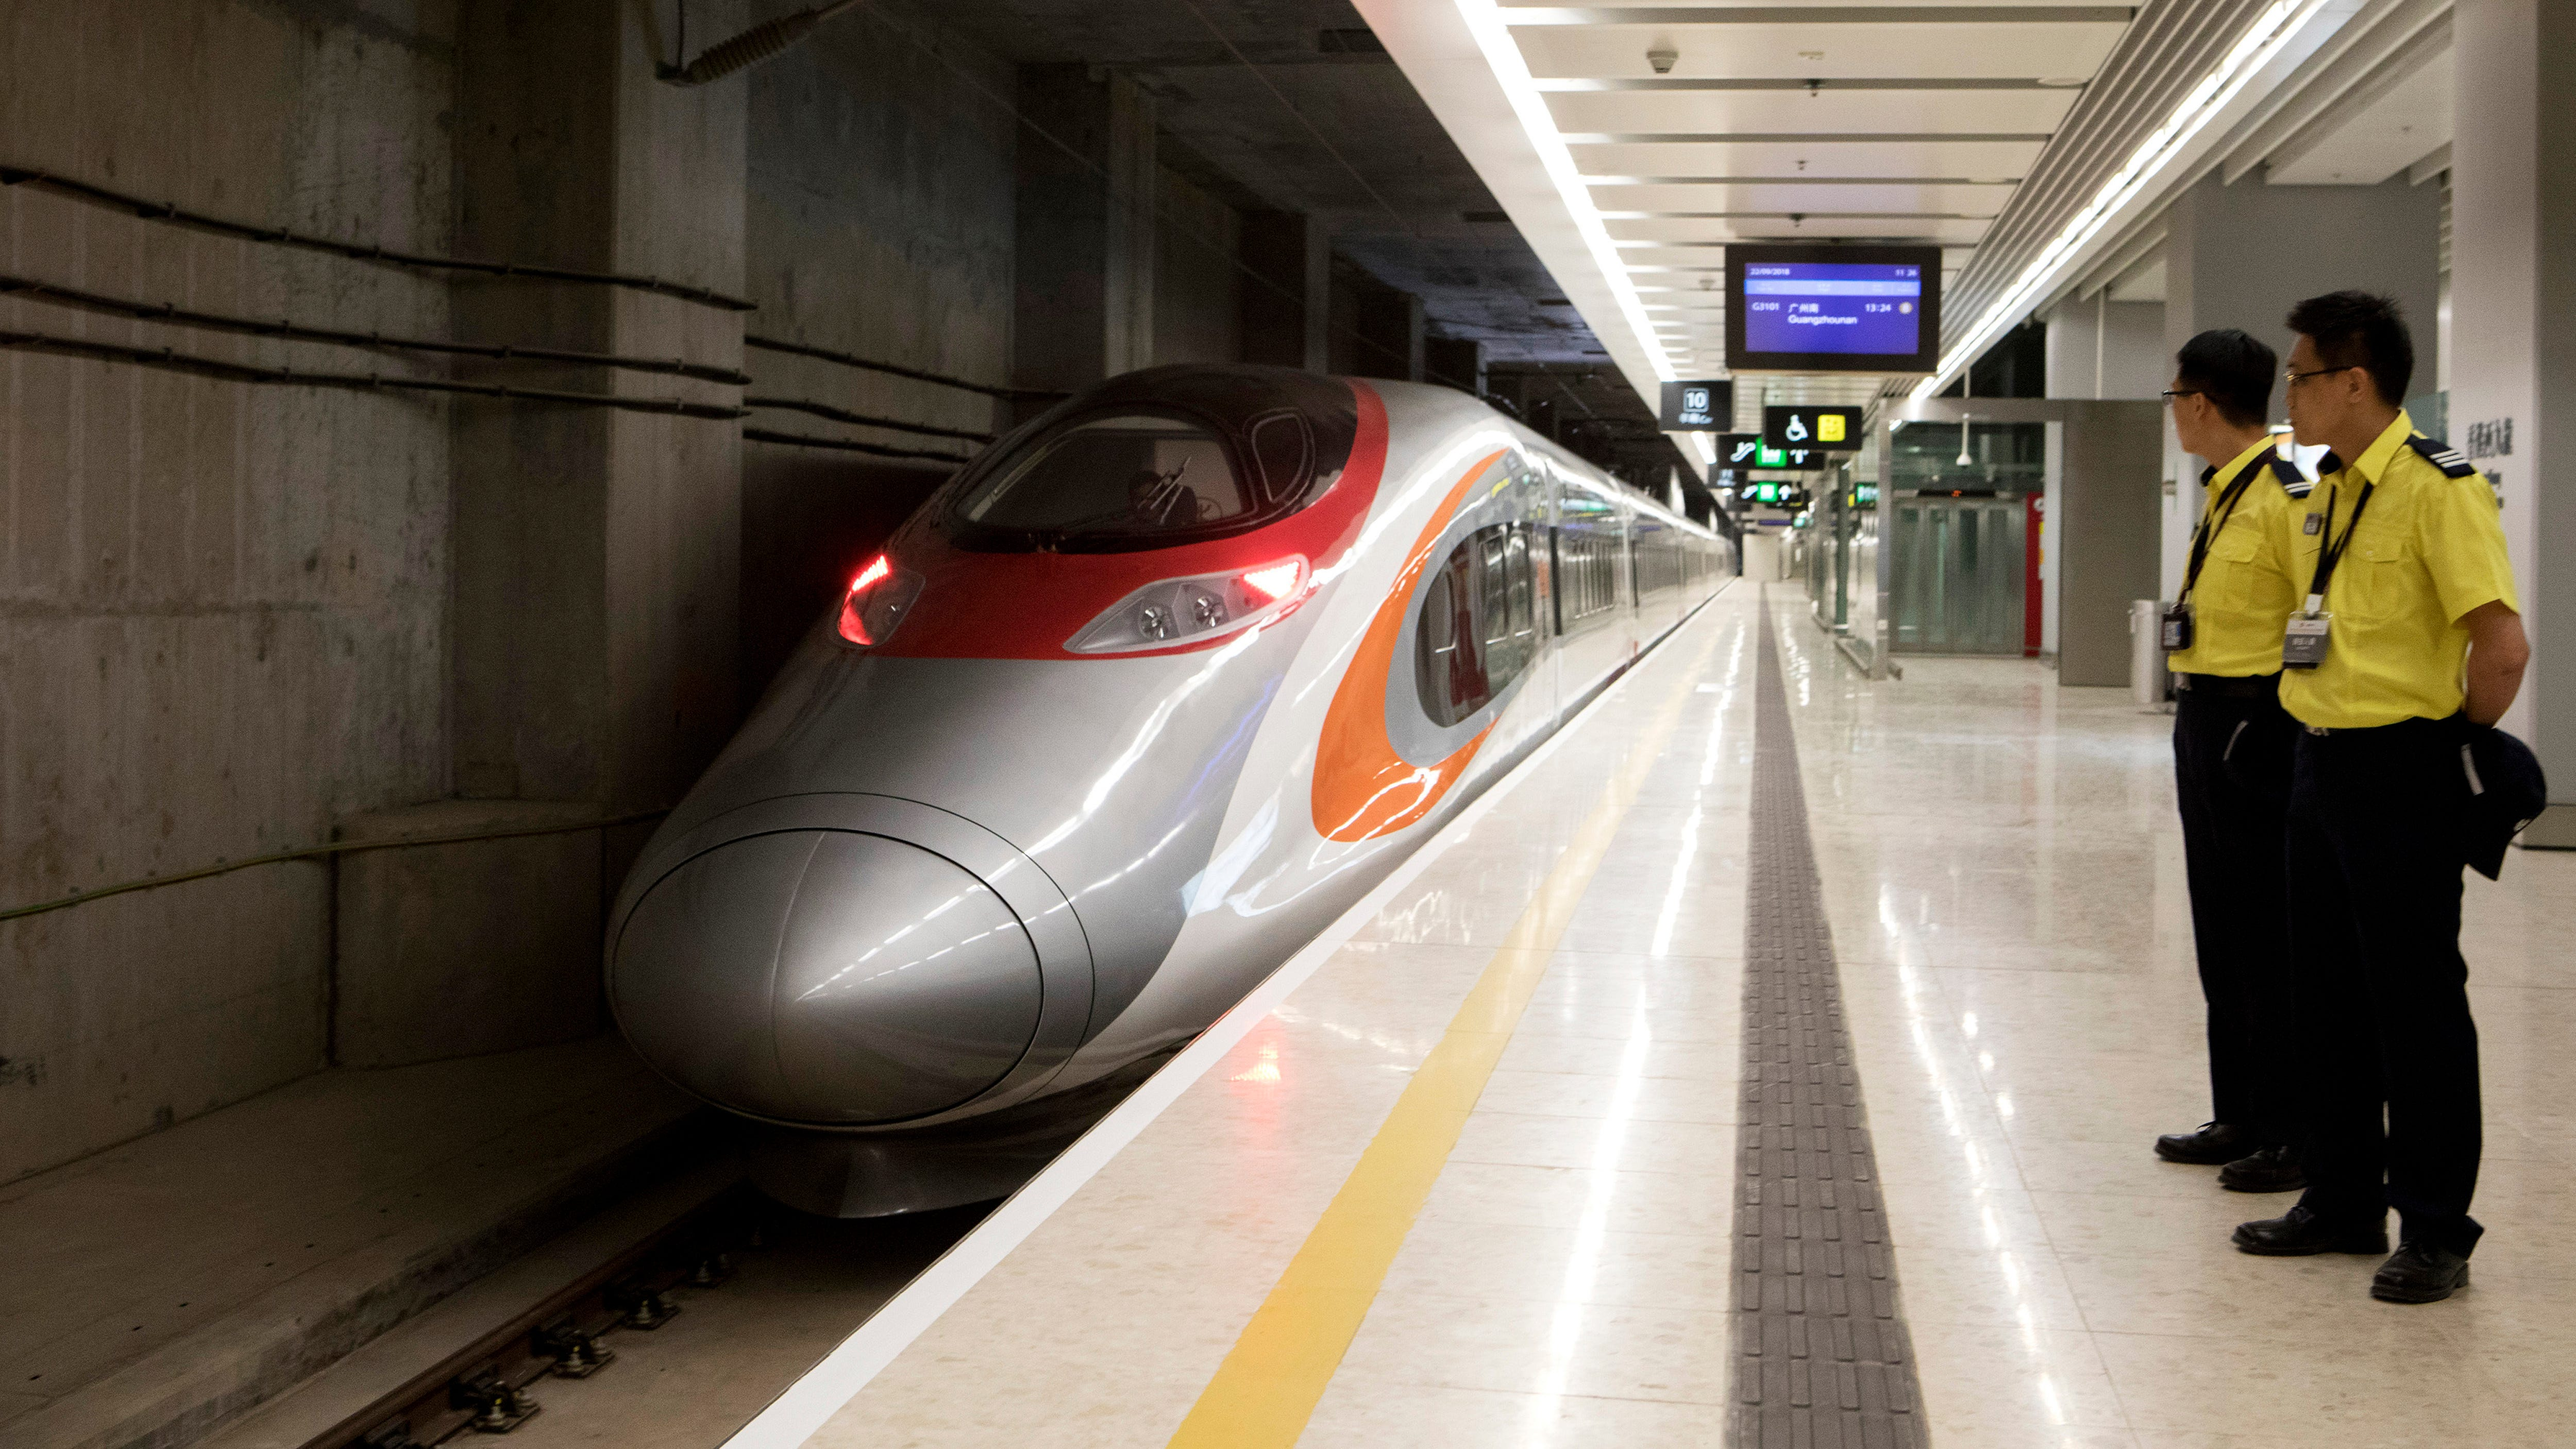 Hong Kong's bullet train to China opens despite controversy, travels 120 mph to mainland